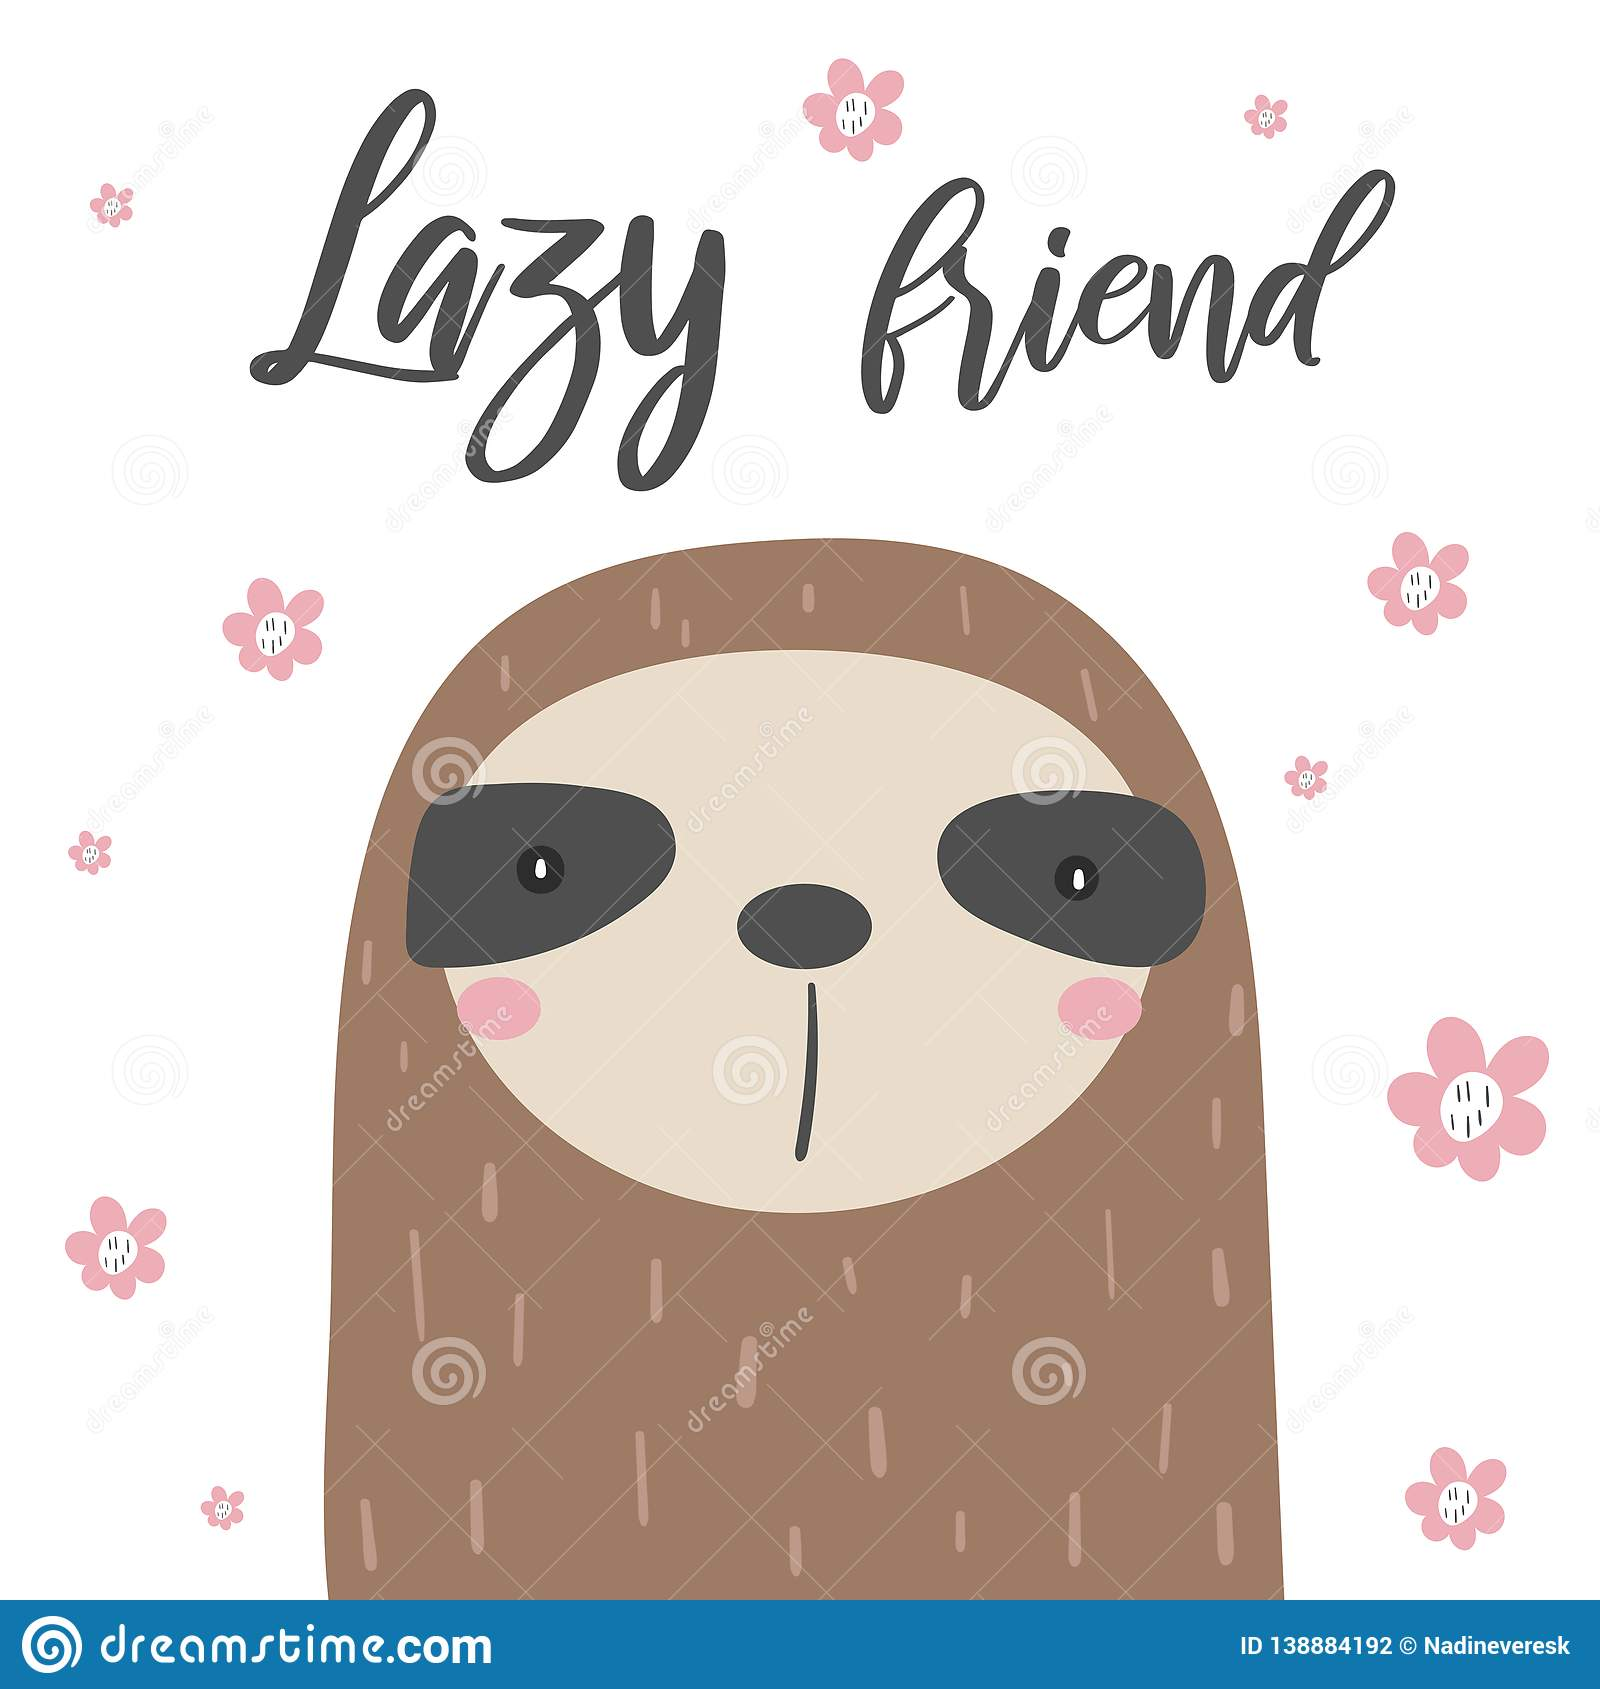 Sloths Card, Postcard With Flowers, White Background, Lazy Friend